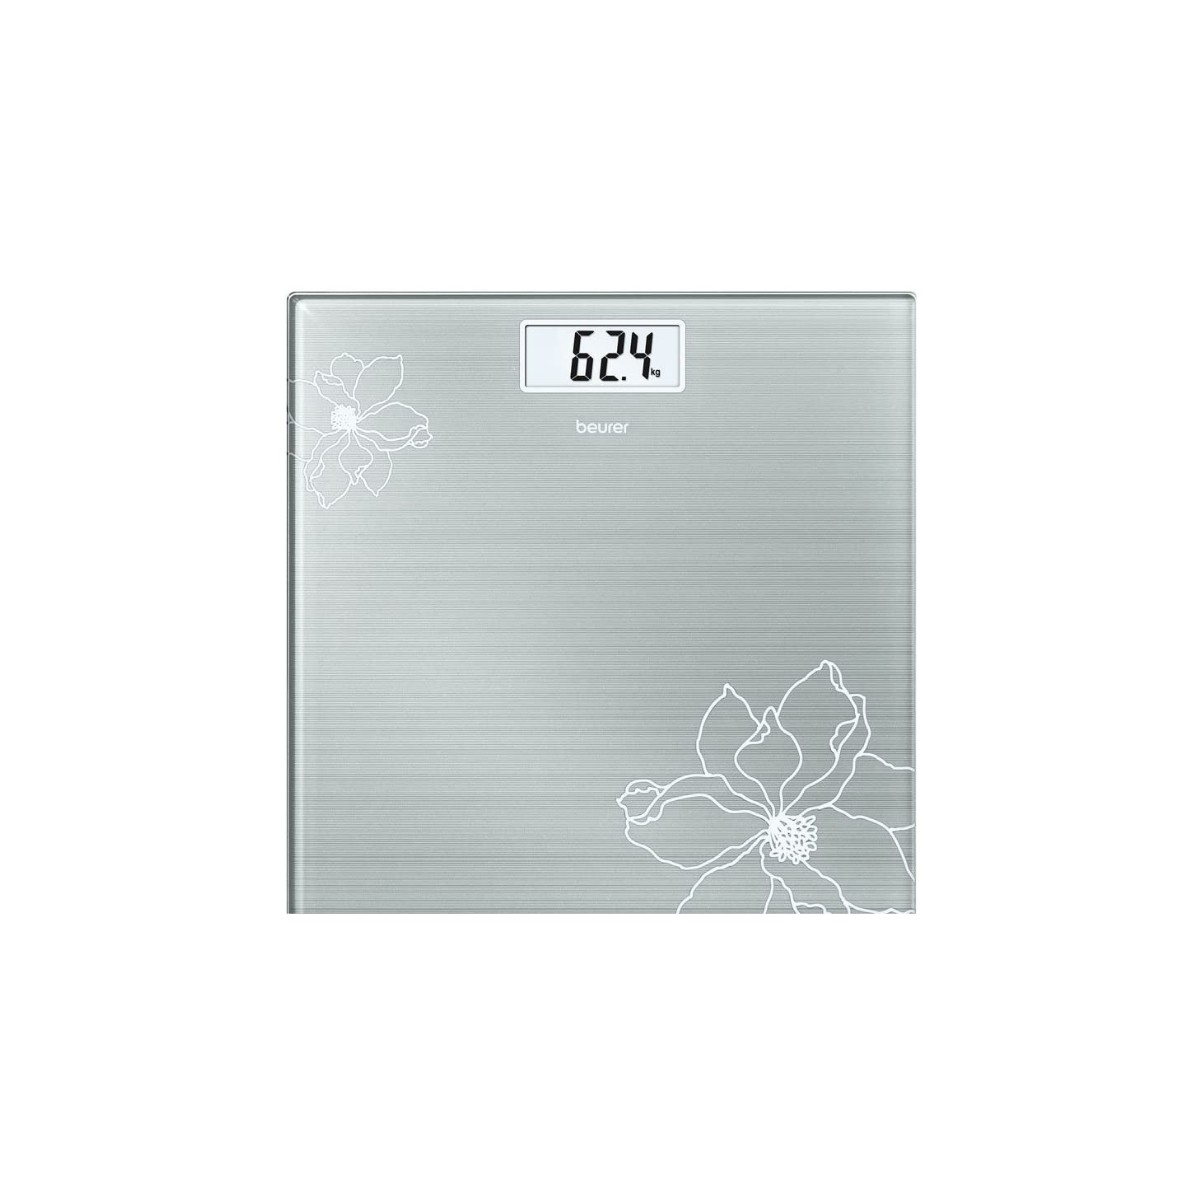 EXTRA-FLAT SCALE 180 Kg - GRAY